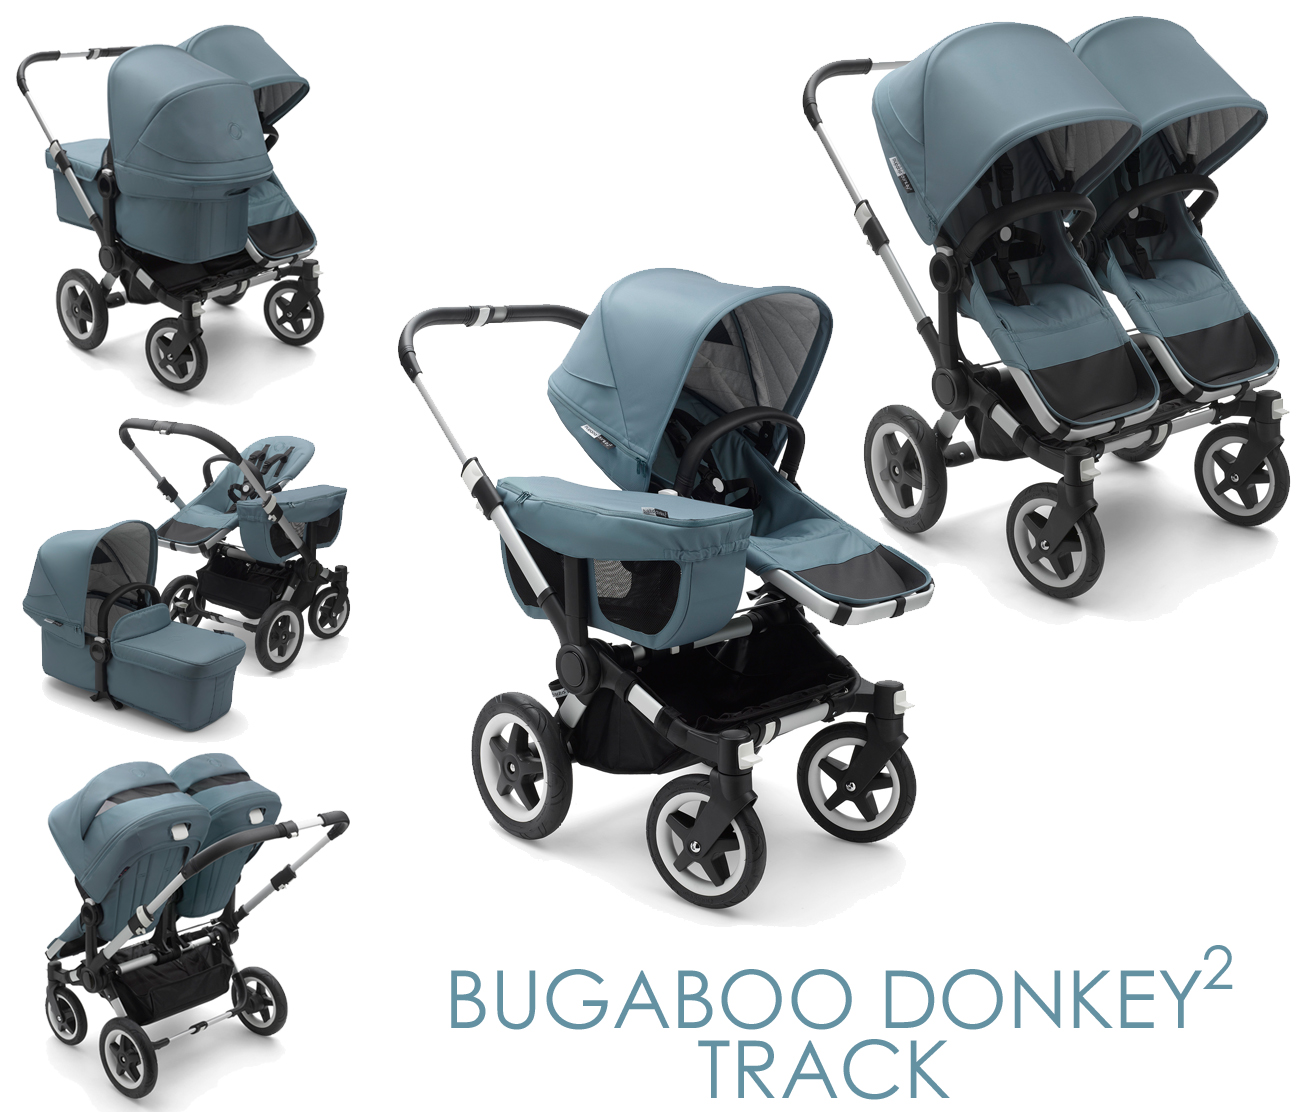 Bugaboo Donkey2 Track Collection